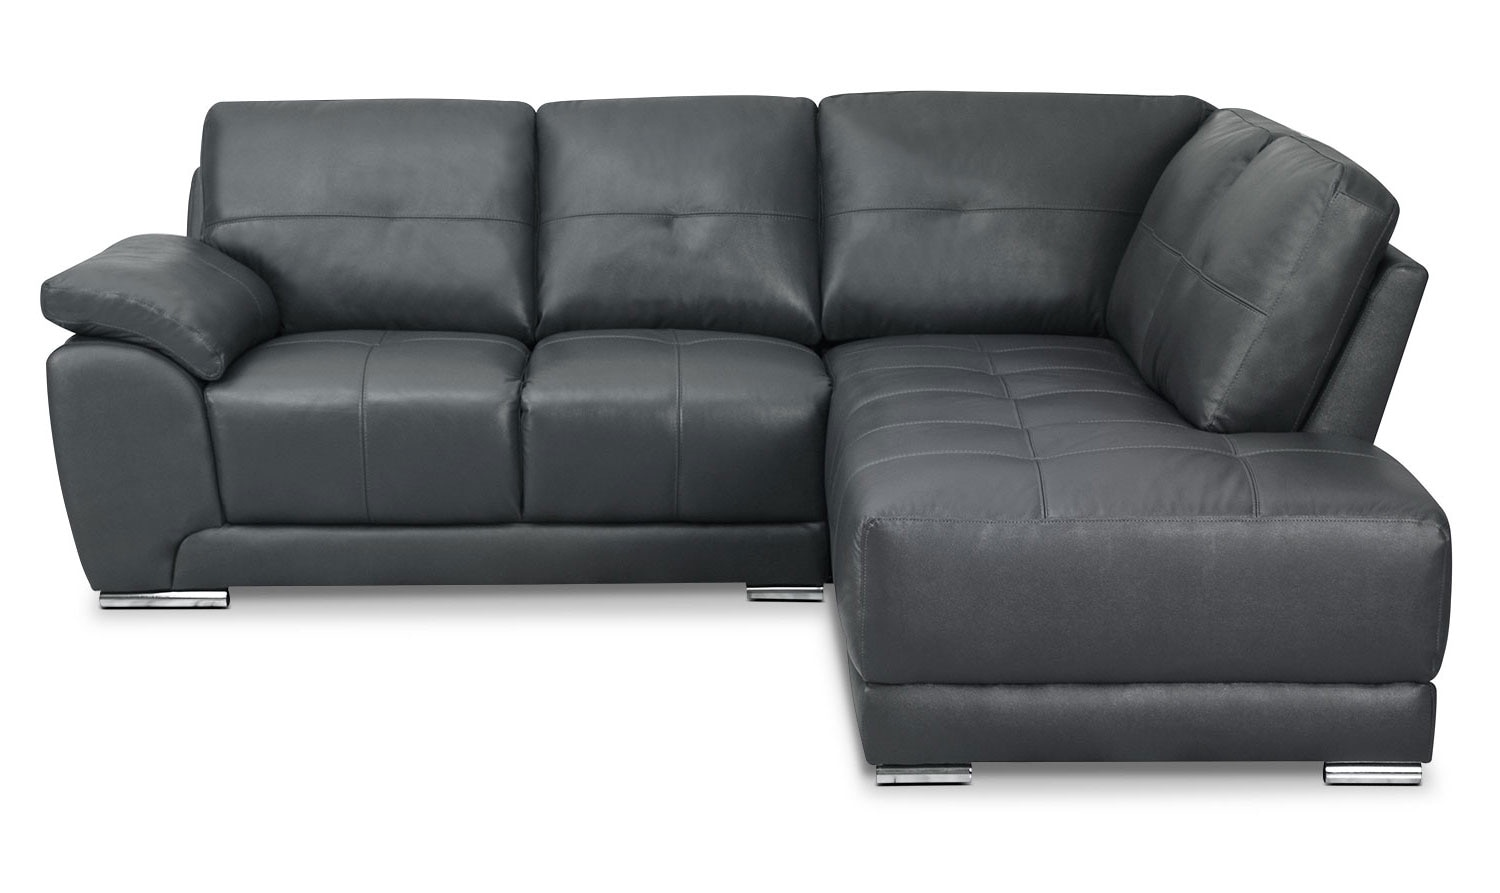 Rylee 2-Piece Genuine Leather Right-Facing Sectional - Grey